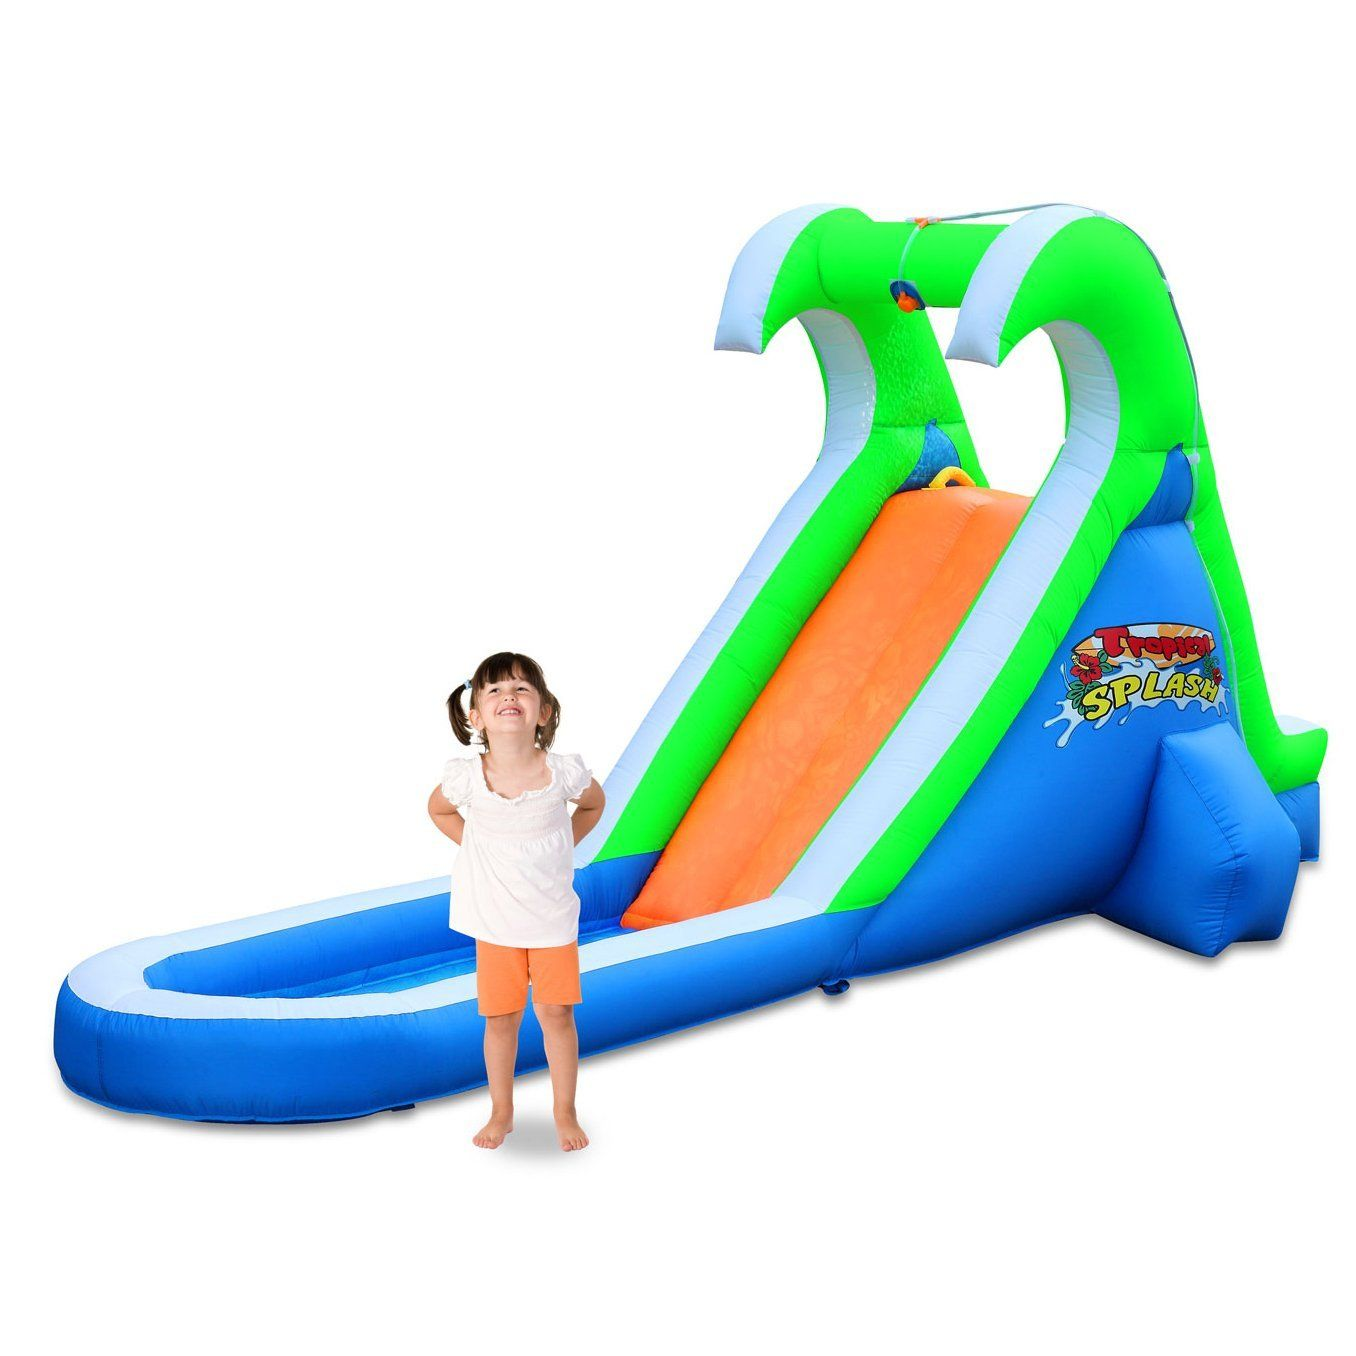 Top 10 Best Water Parks in 2019 Reviews | Inflatable water ...